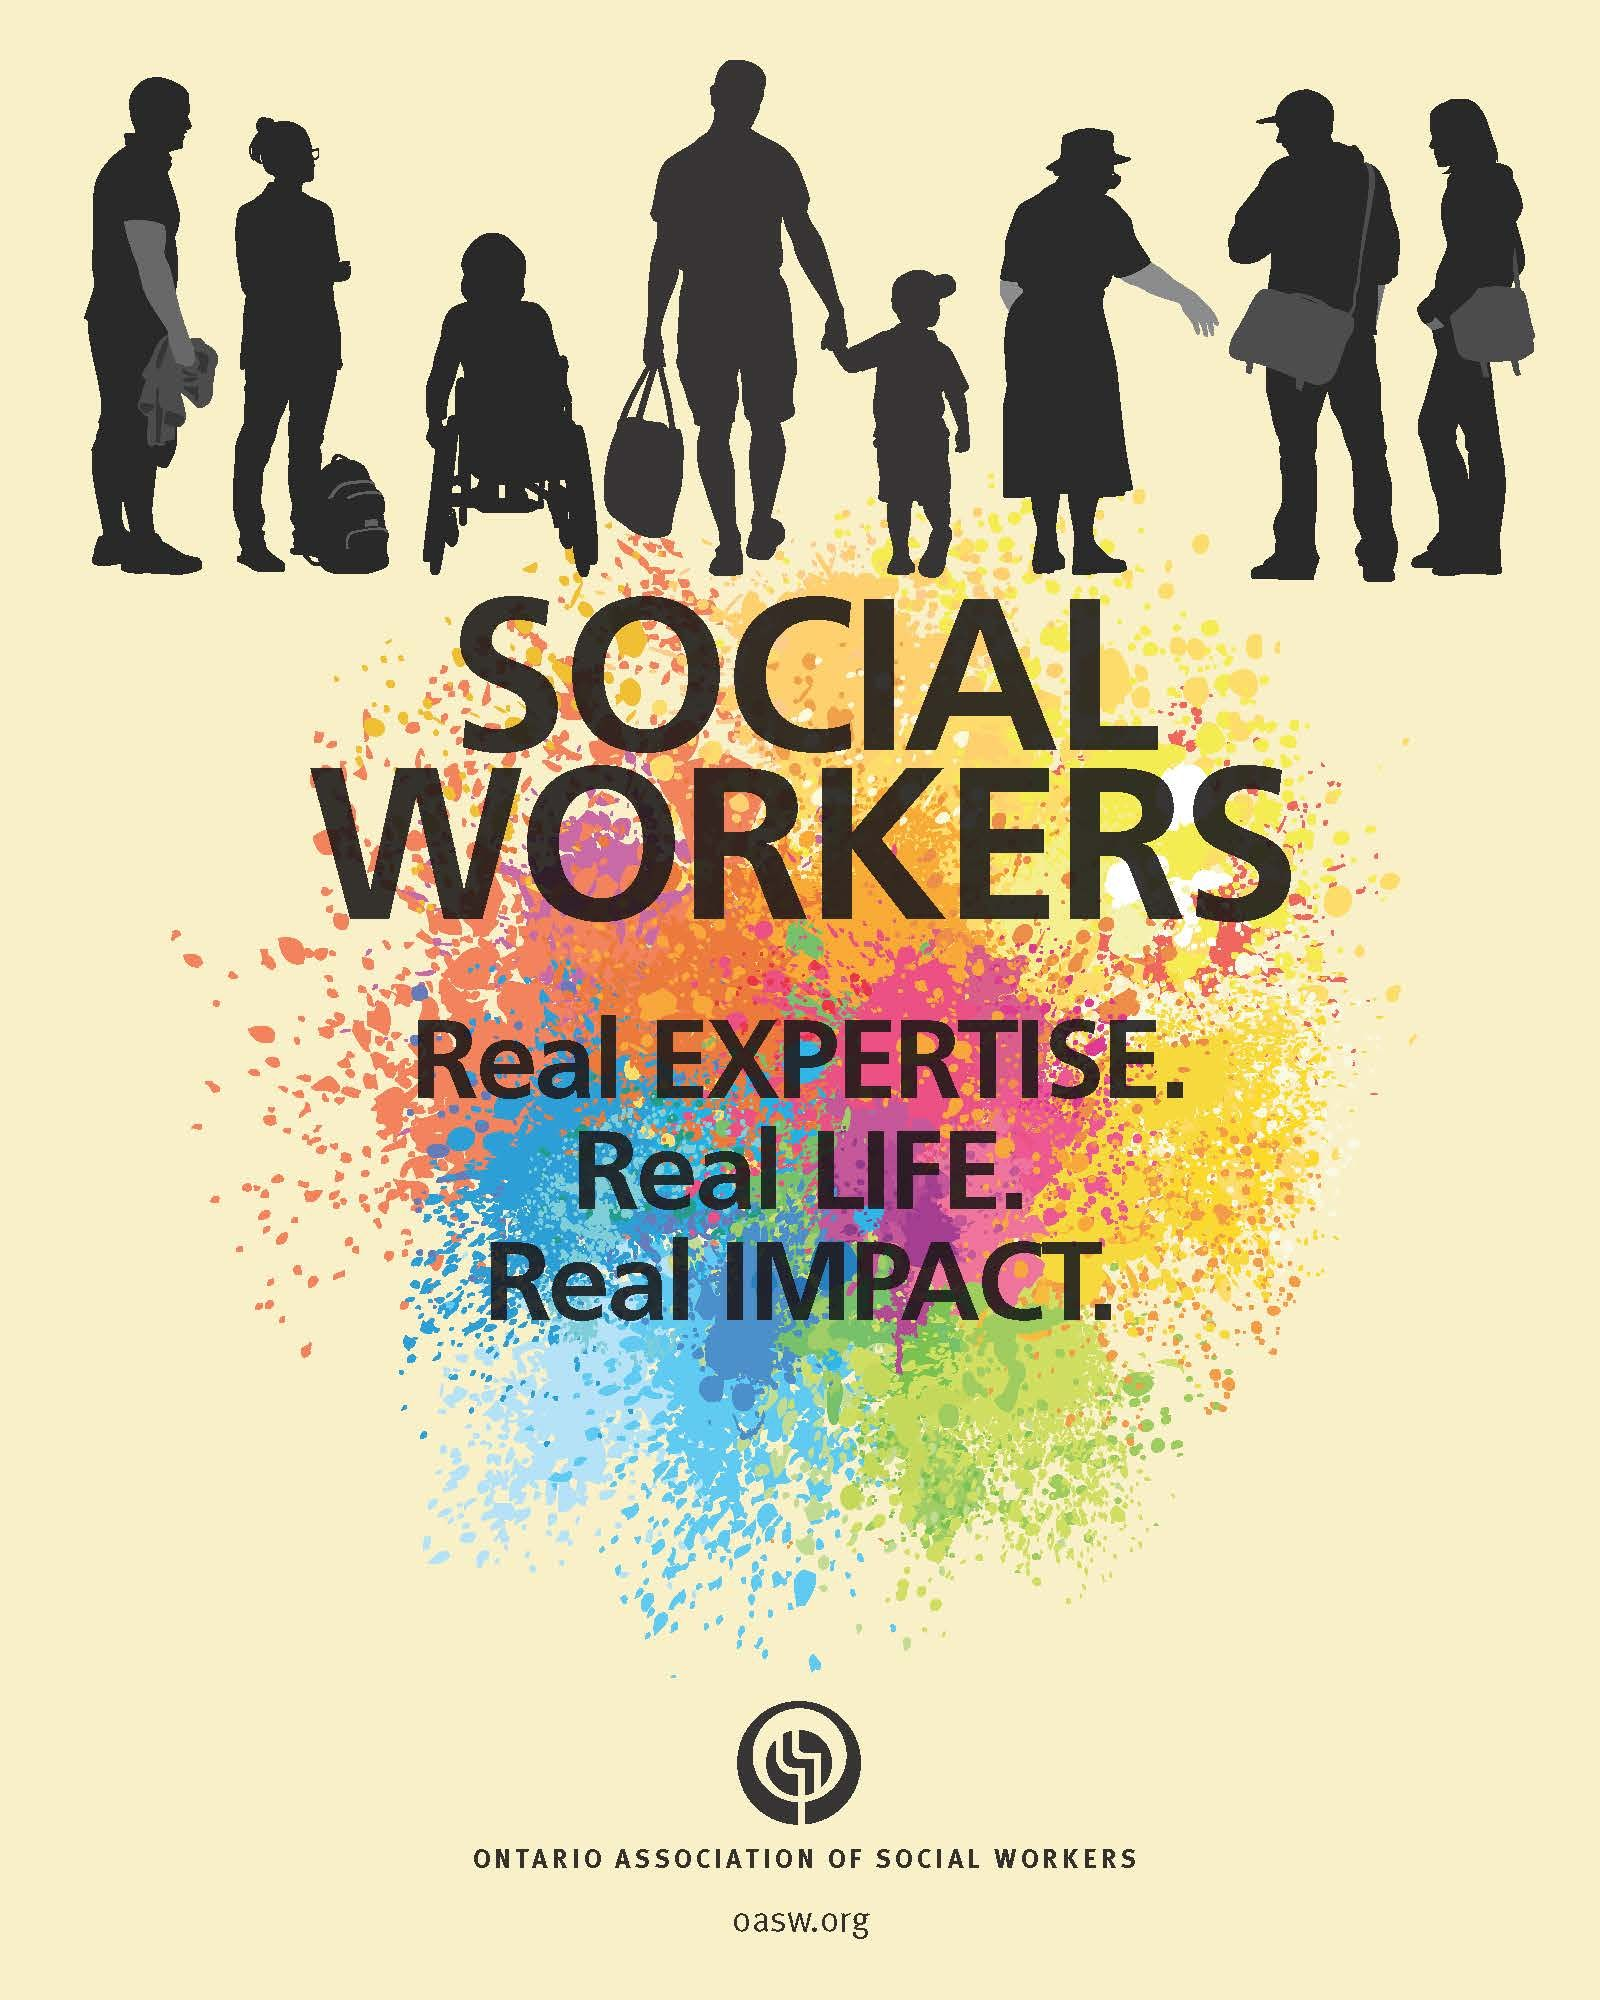 We are celebrating our staff this week (and every week) - Happy Social Work Week!